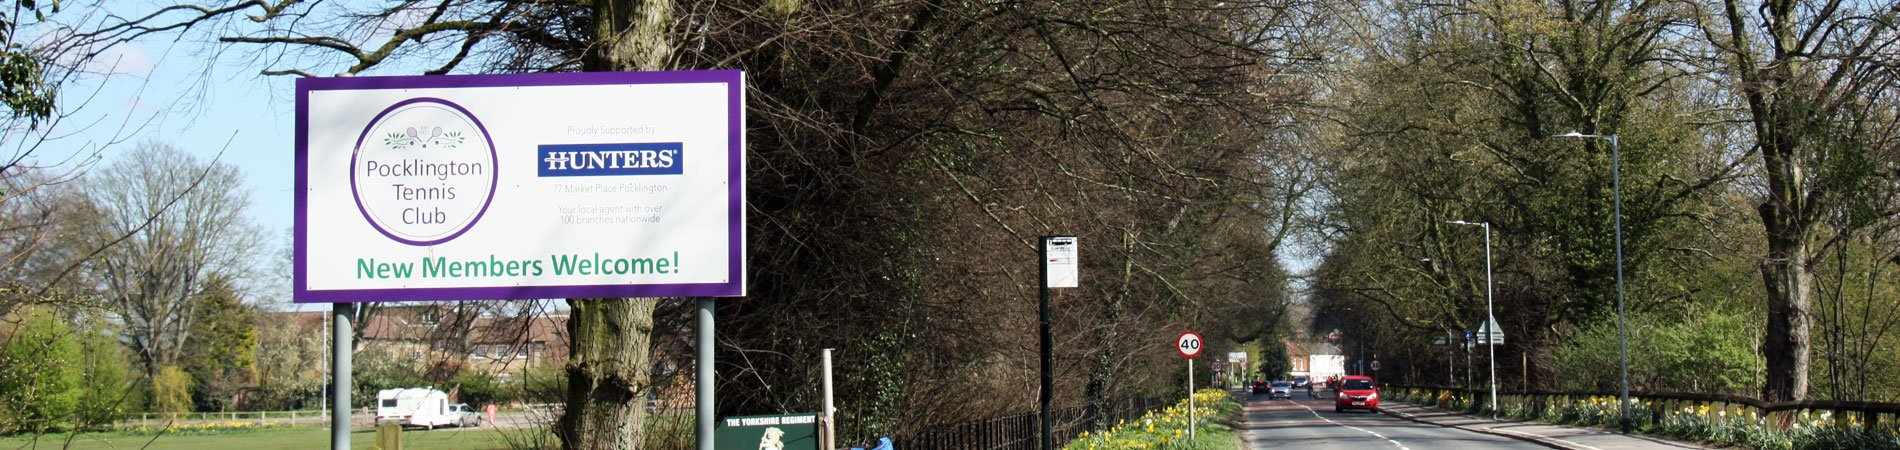 The sign showing the entrance to Pocklington Tennis Club